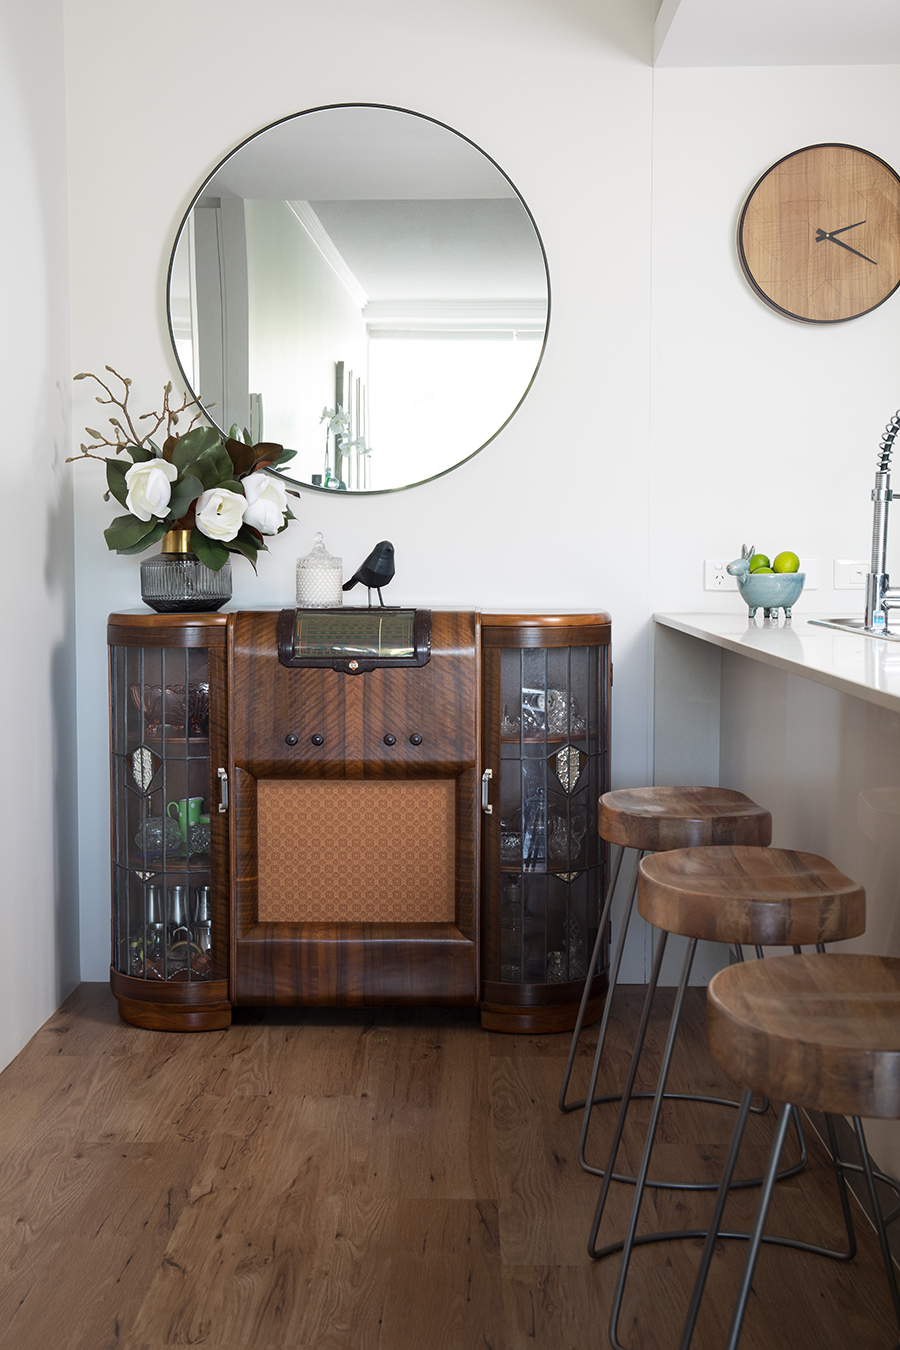 Ivy + Finch apartment interior design vintage furntiure